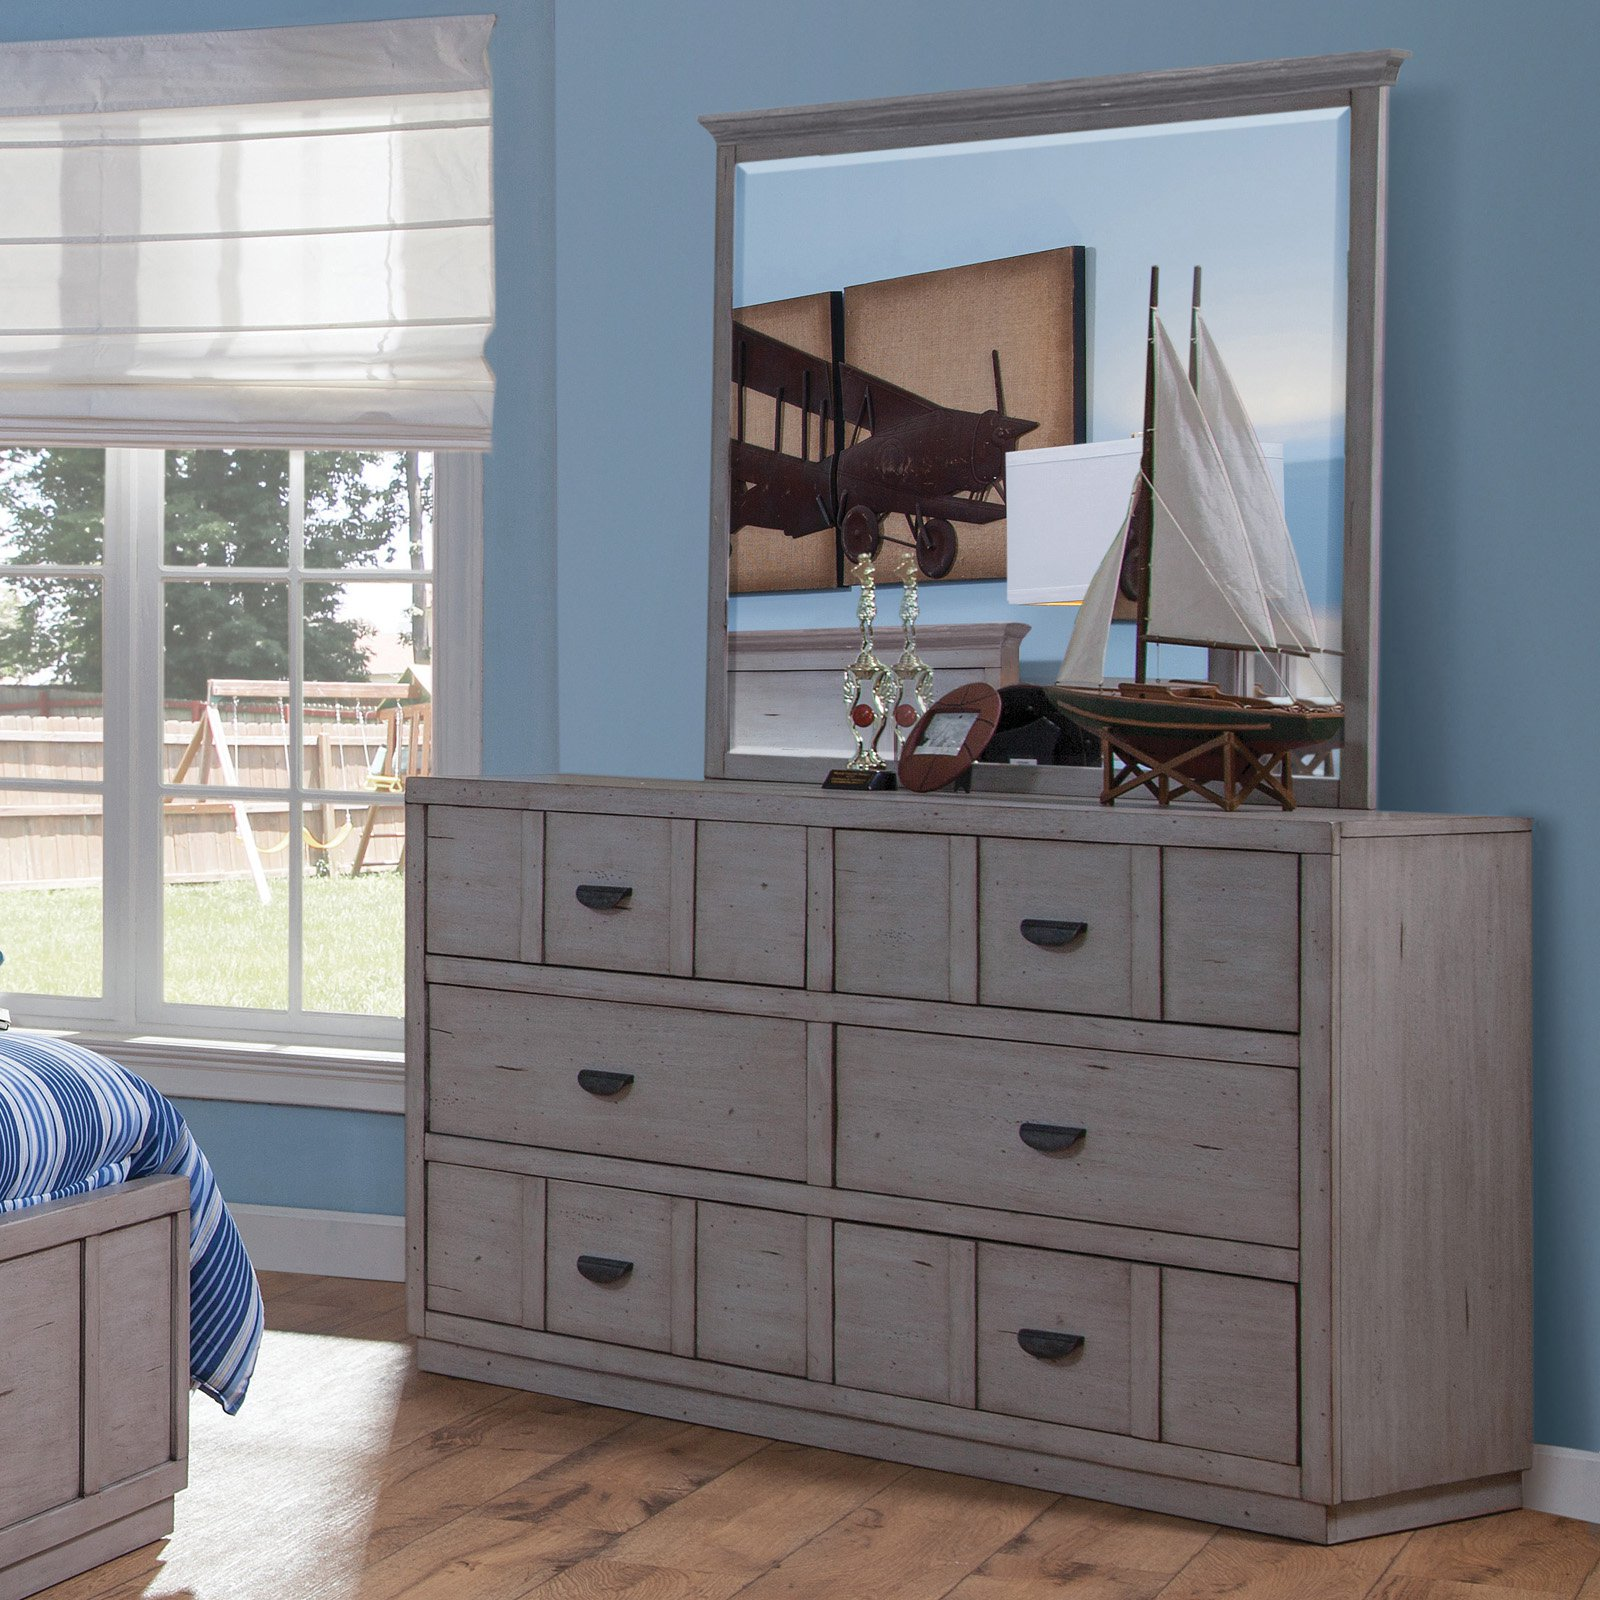 American Woodcrafters Provo 6 Drawer Double Dresser with Optional Mirror - Driftwood